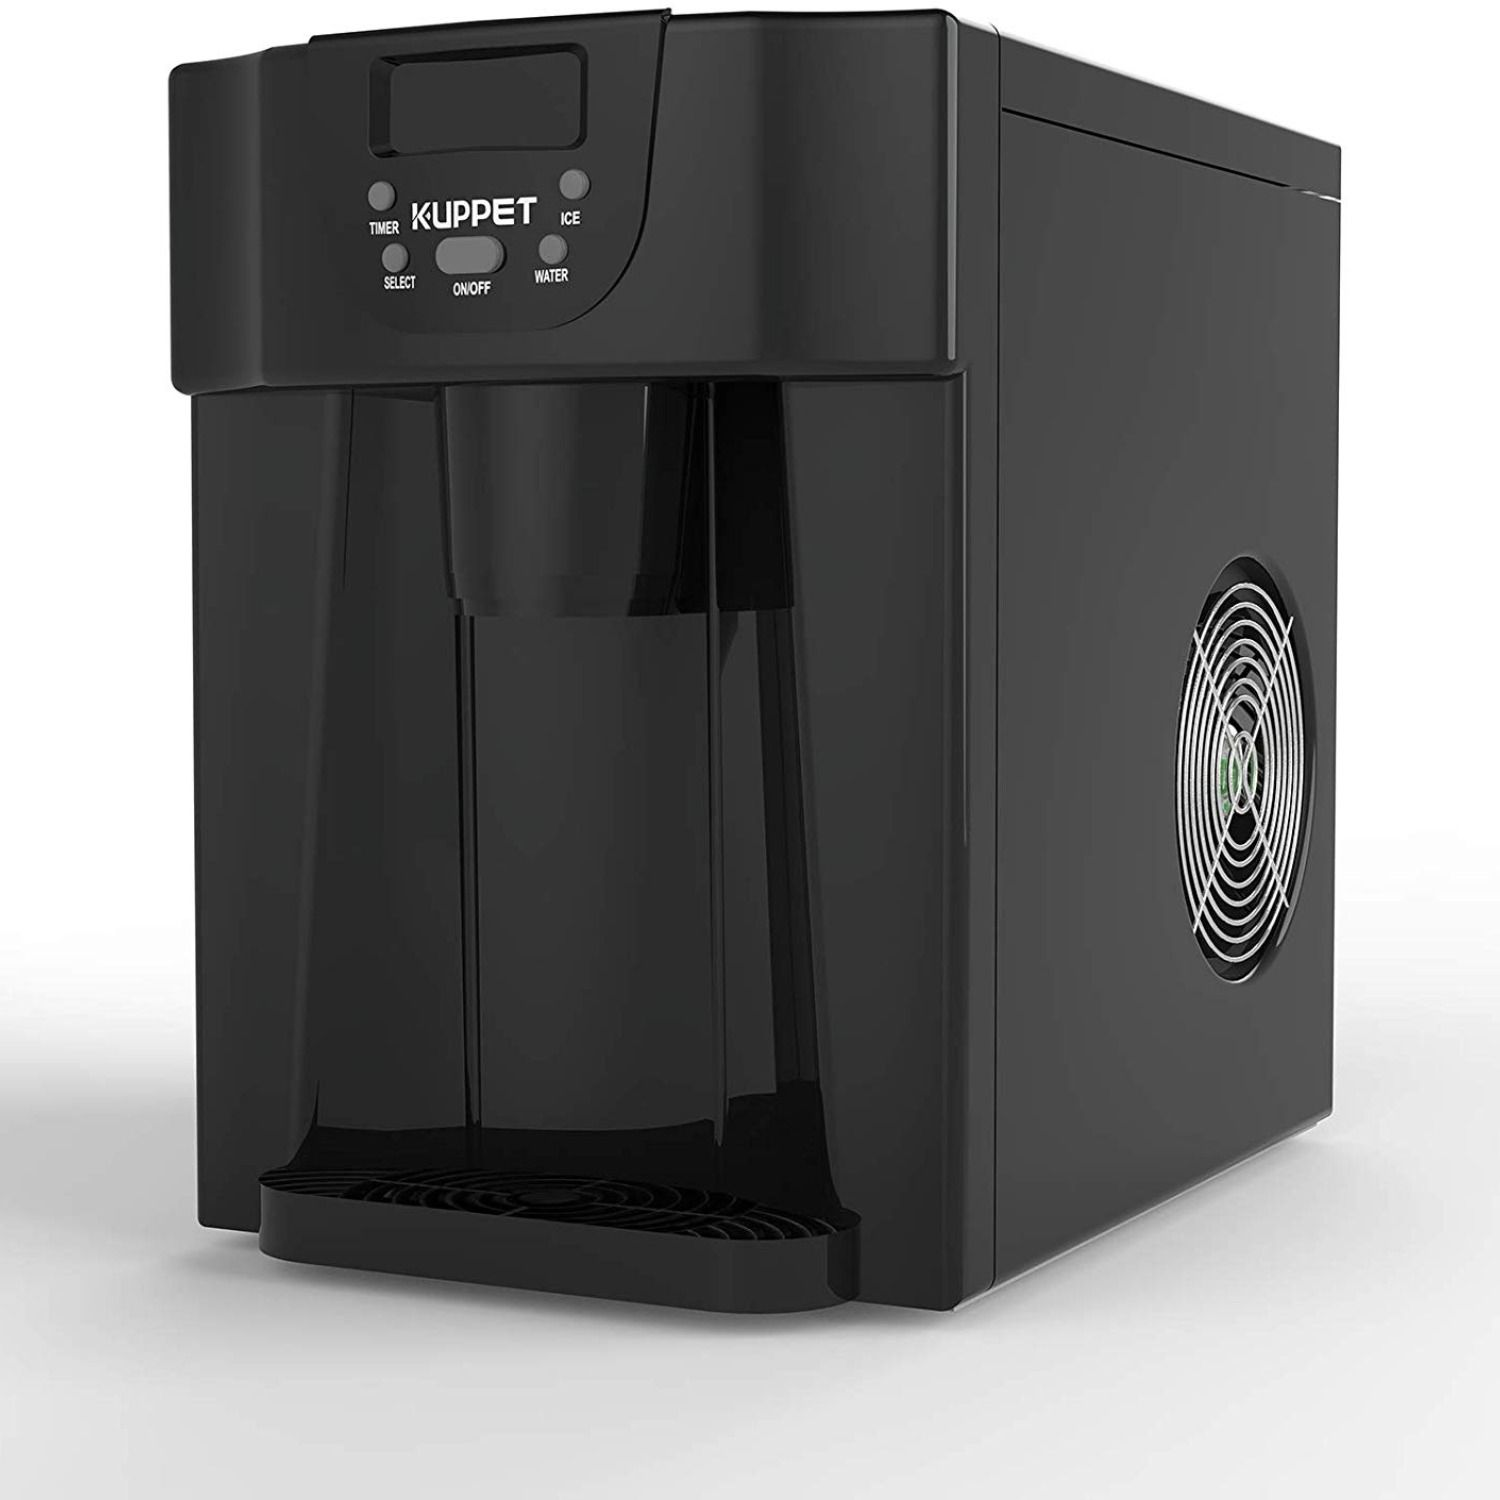 Neutral Reviews Kuppet 2 In 1 Countertop Ice Maker Produces 36